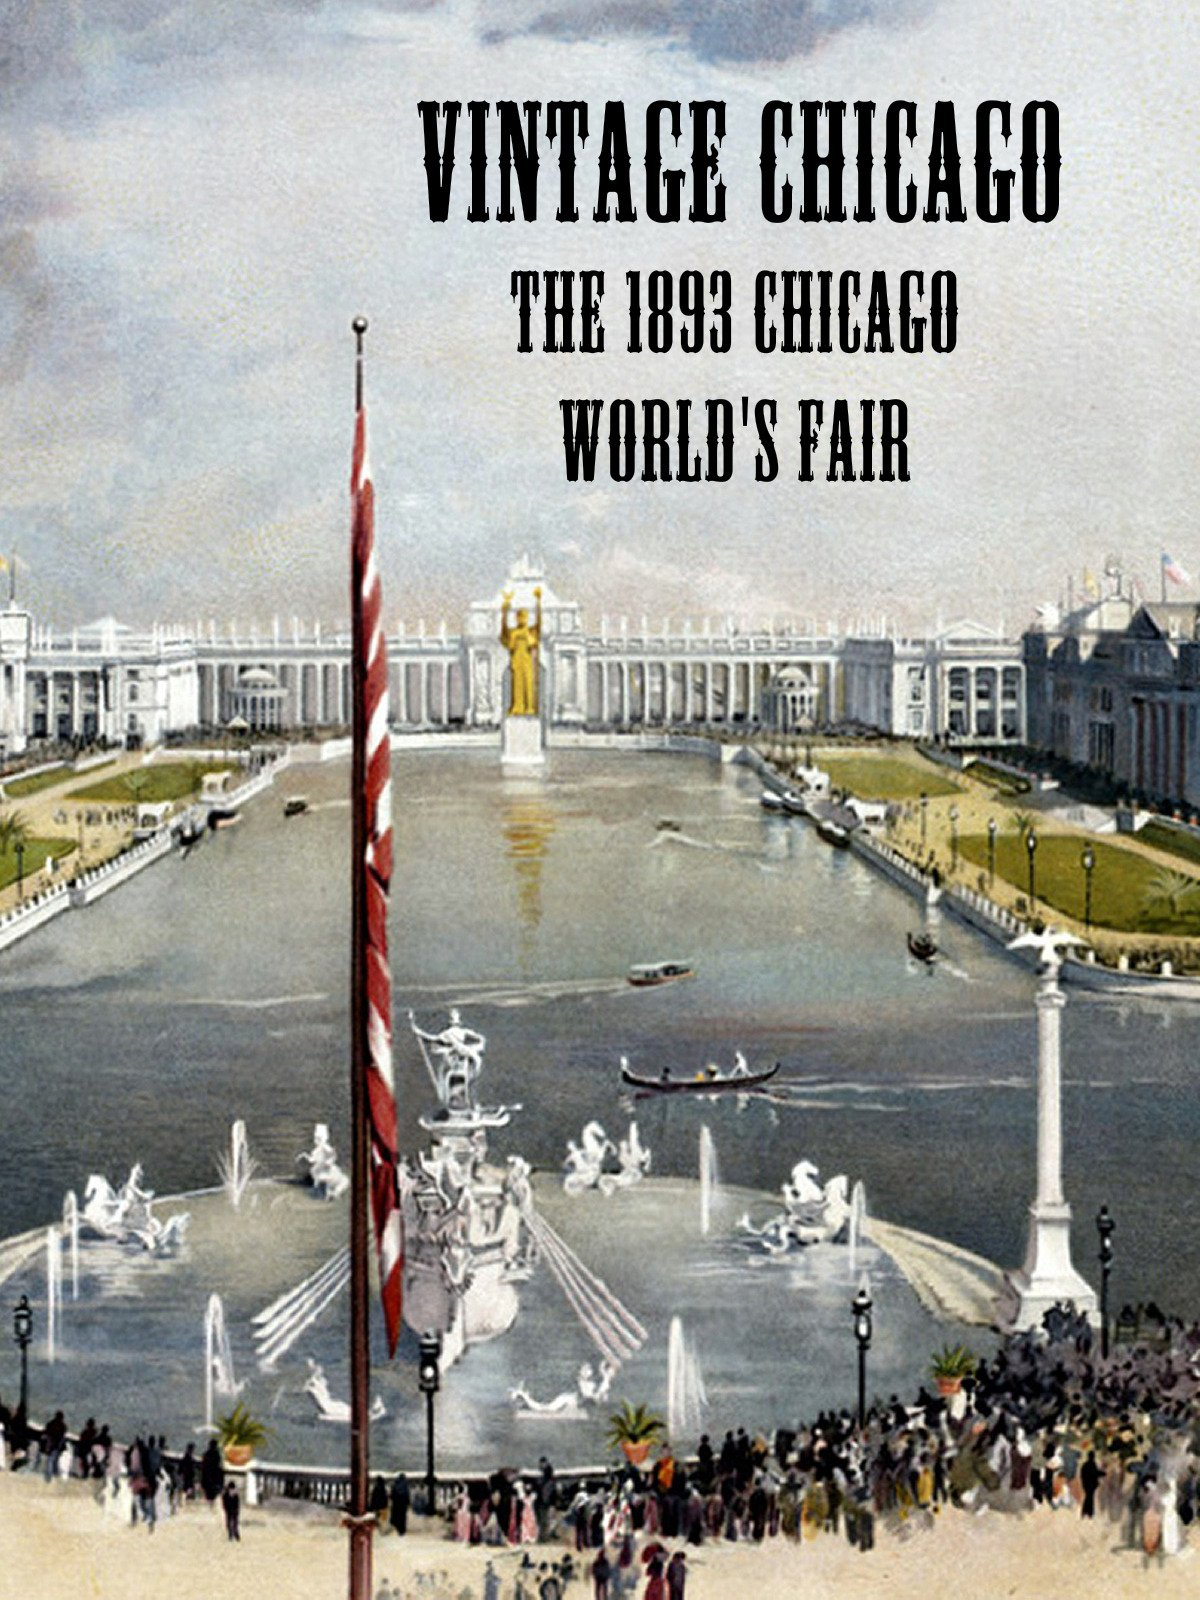 Vintage Chicago: The 1893 Chicago World's Fair on Amazon Prime Video UK